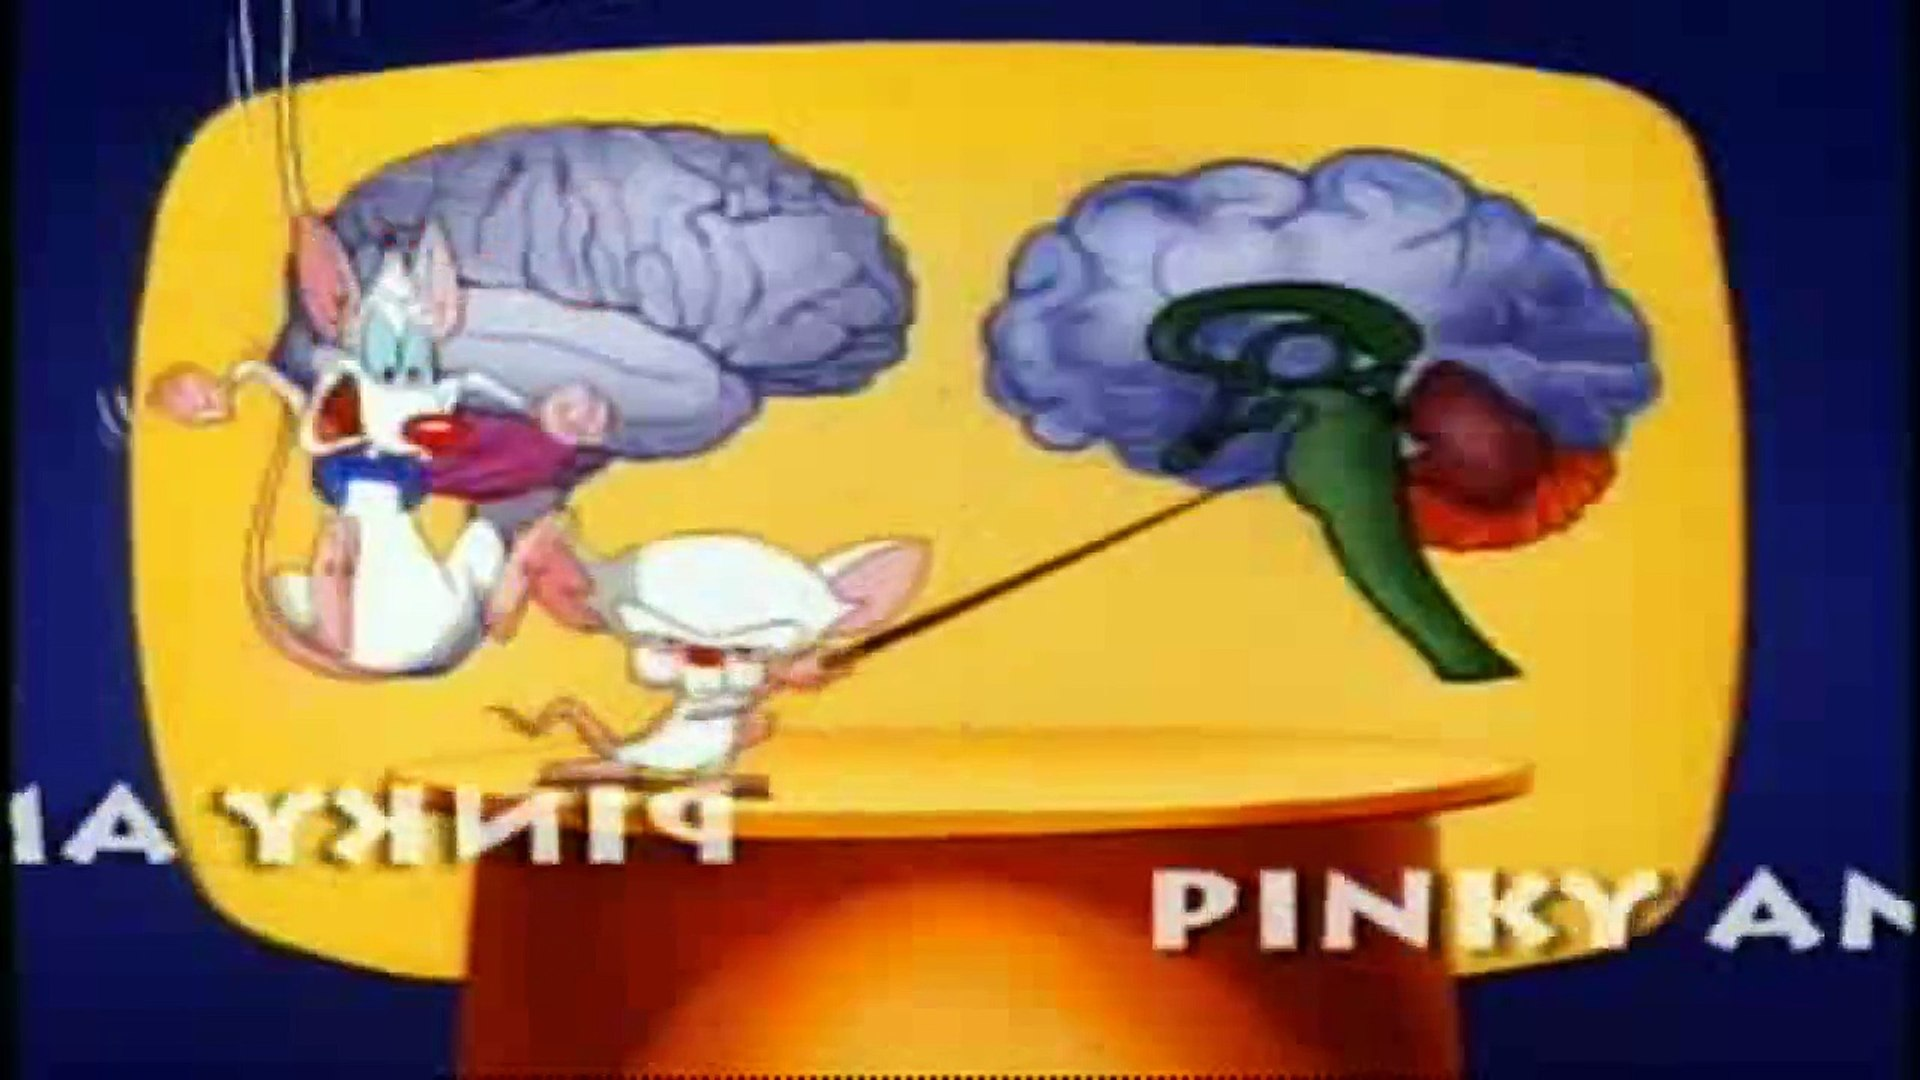 Pinky And The Brain - S 1 E 18 & E 19 - The Third Mouse, The Visit